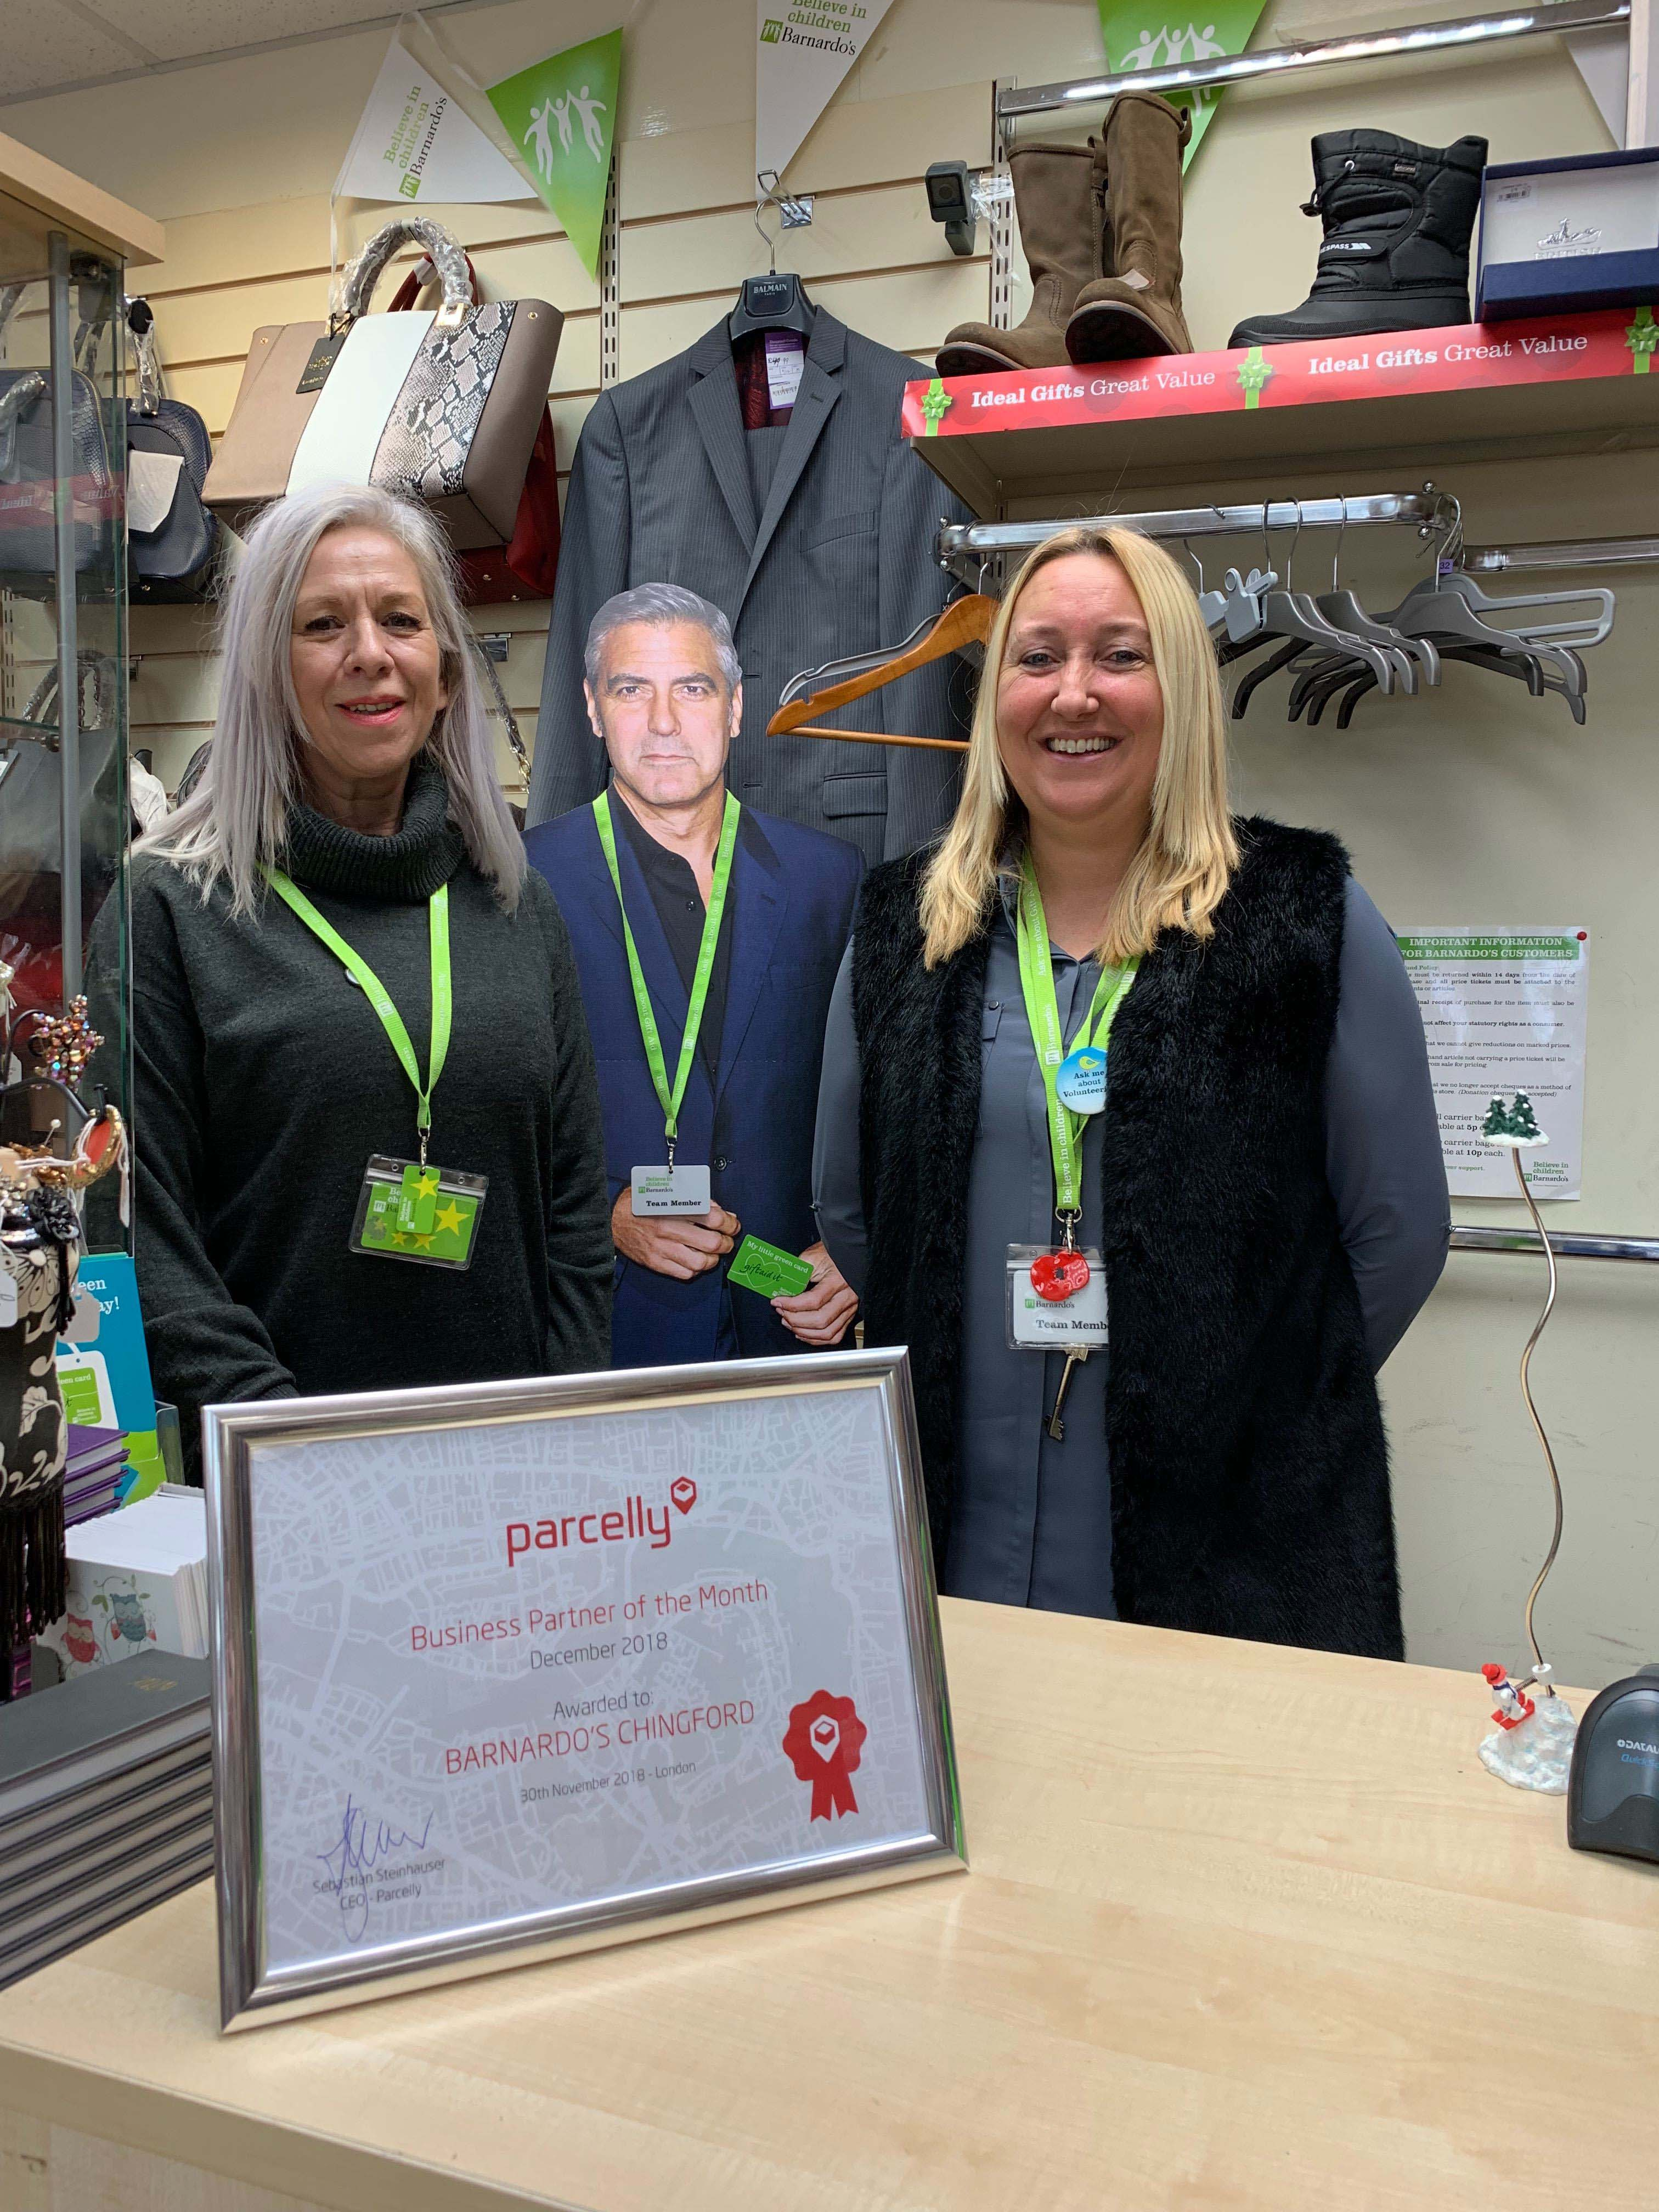 Parcelly Location of the Month Barnardos Chingford